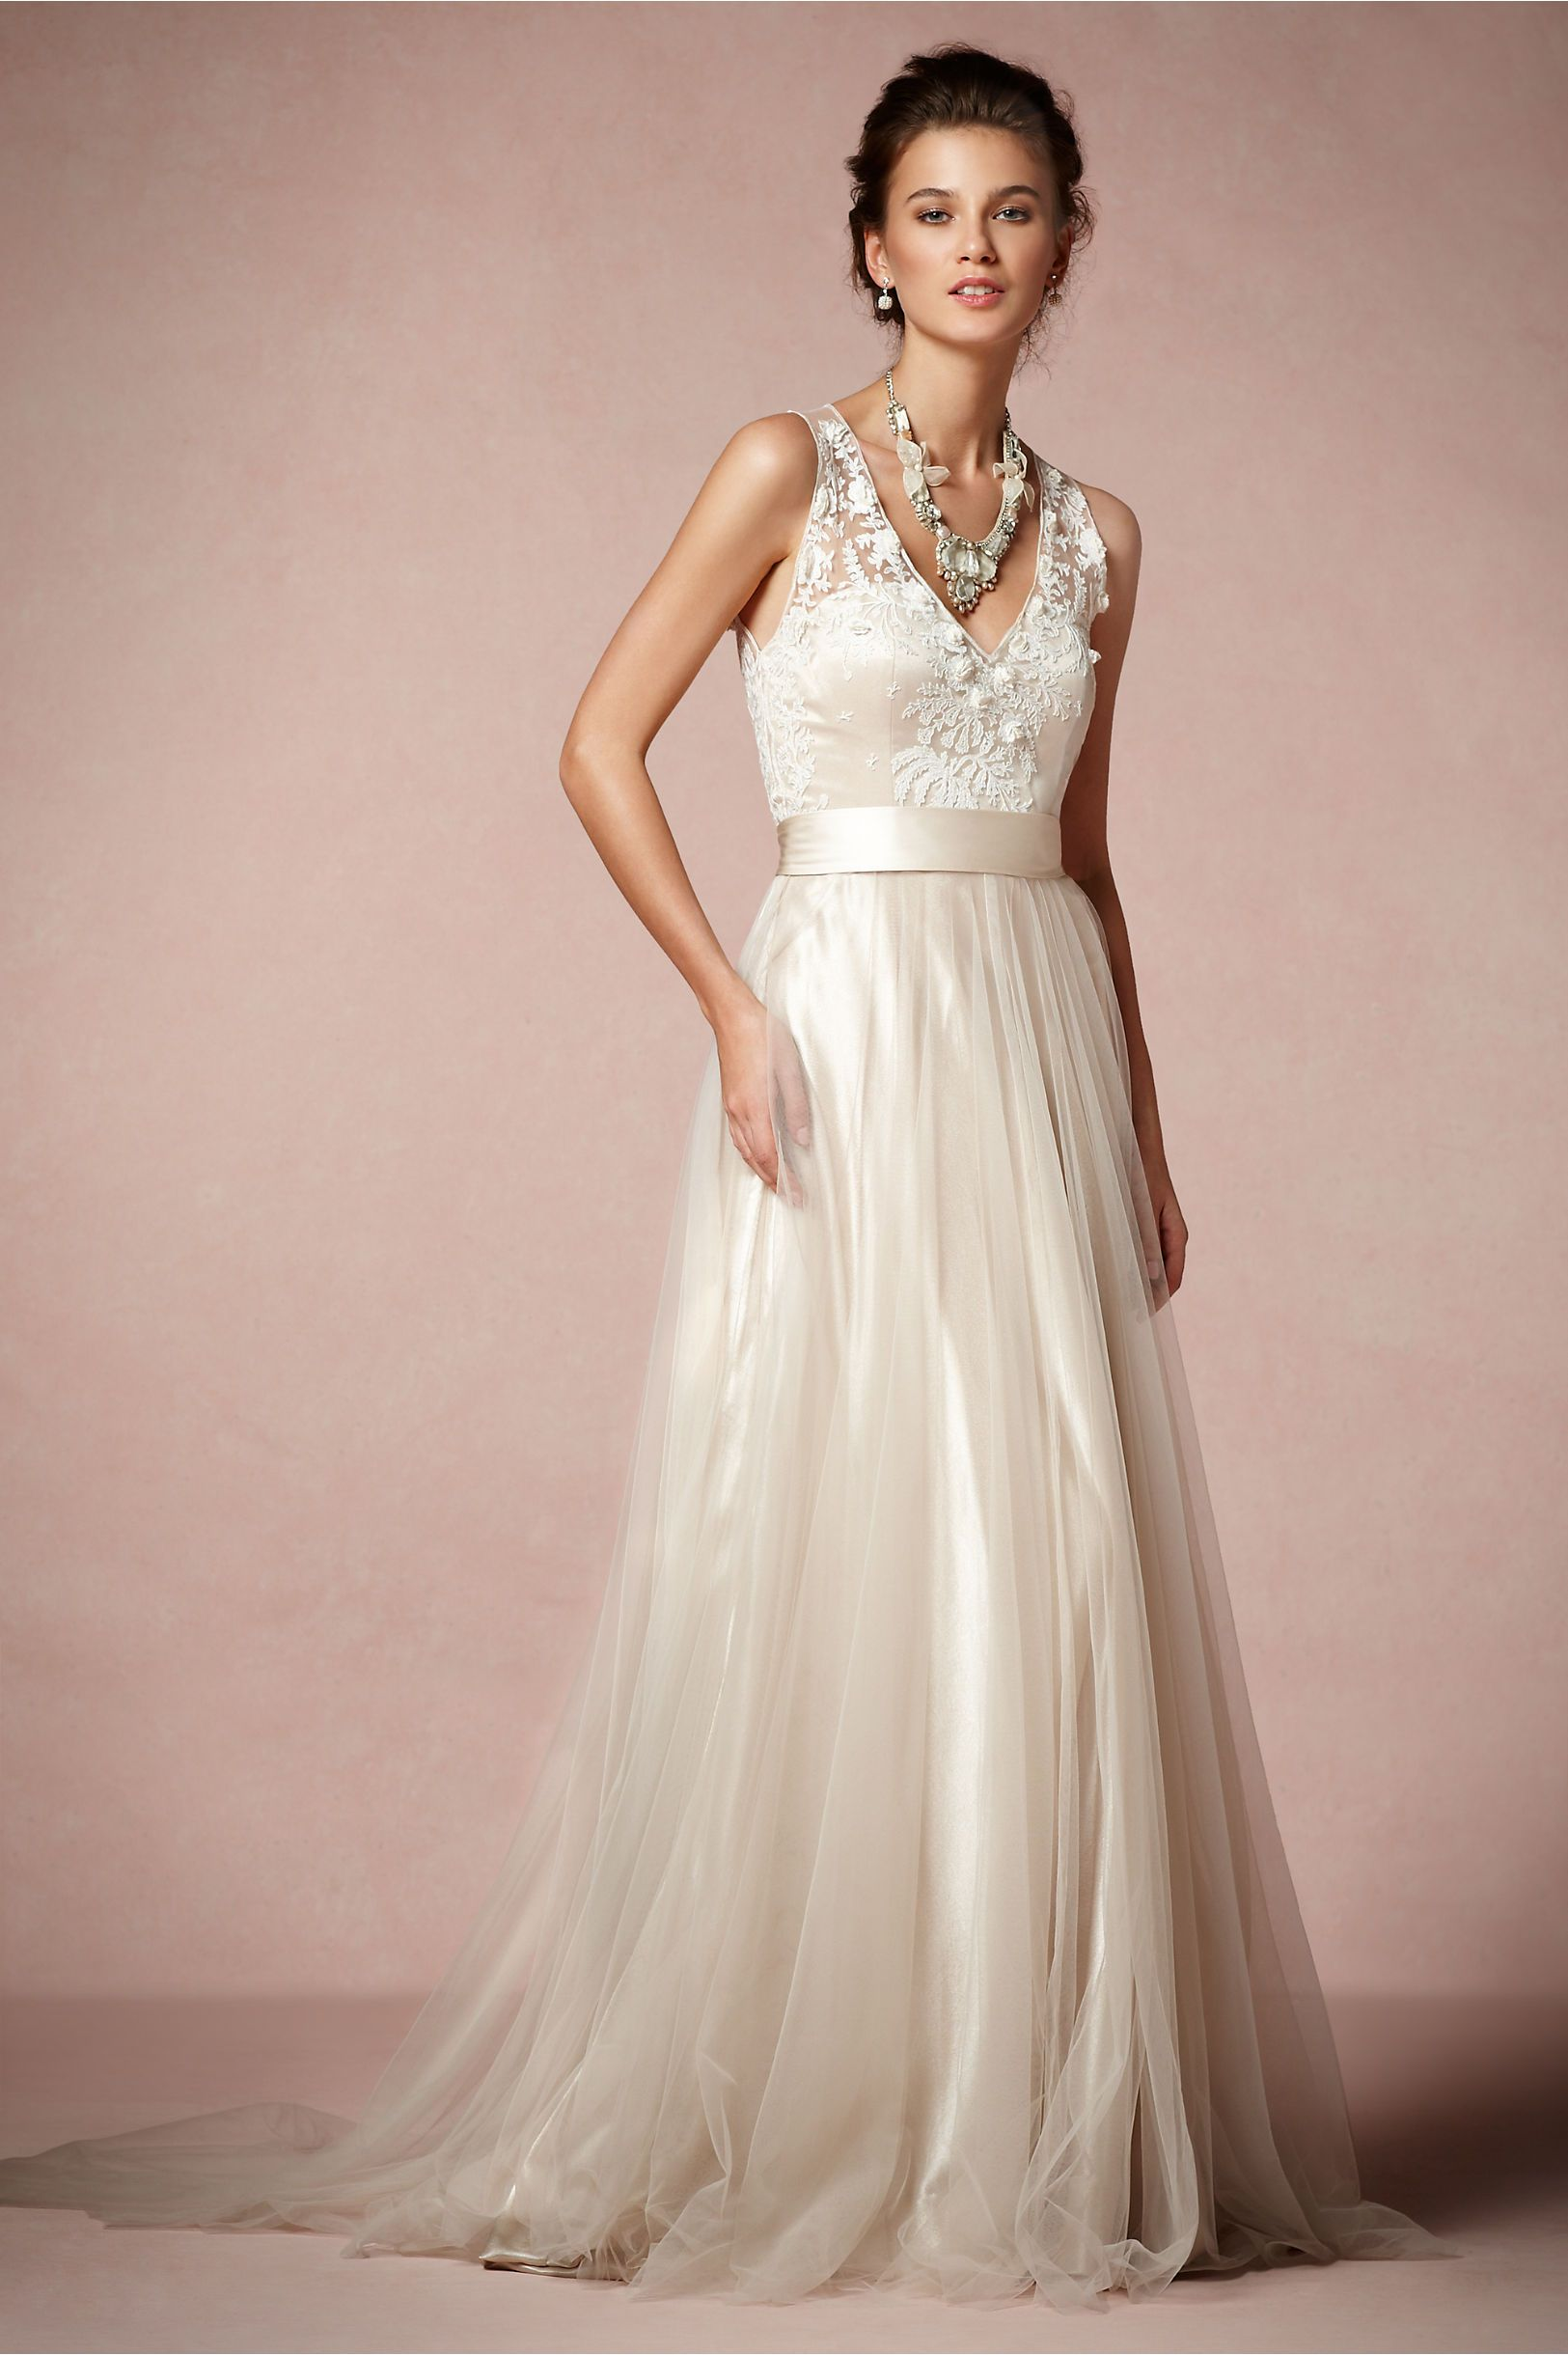 Onyx Gown from BHLDN | Dress love | Pinterest | Novia de encaje ...